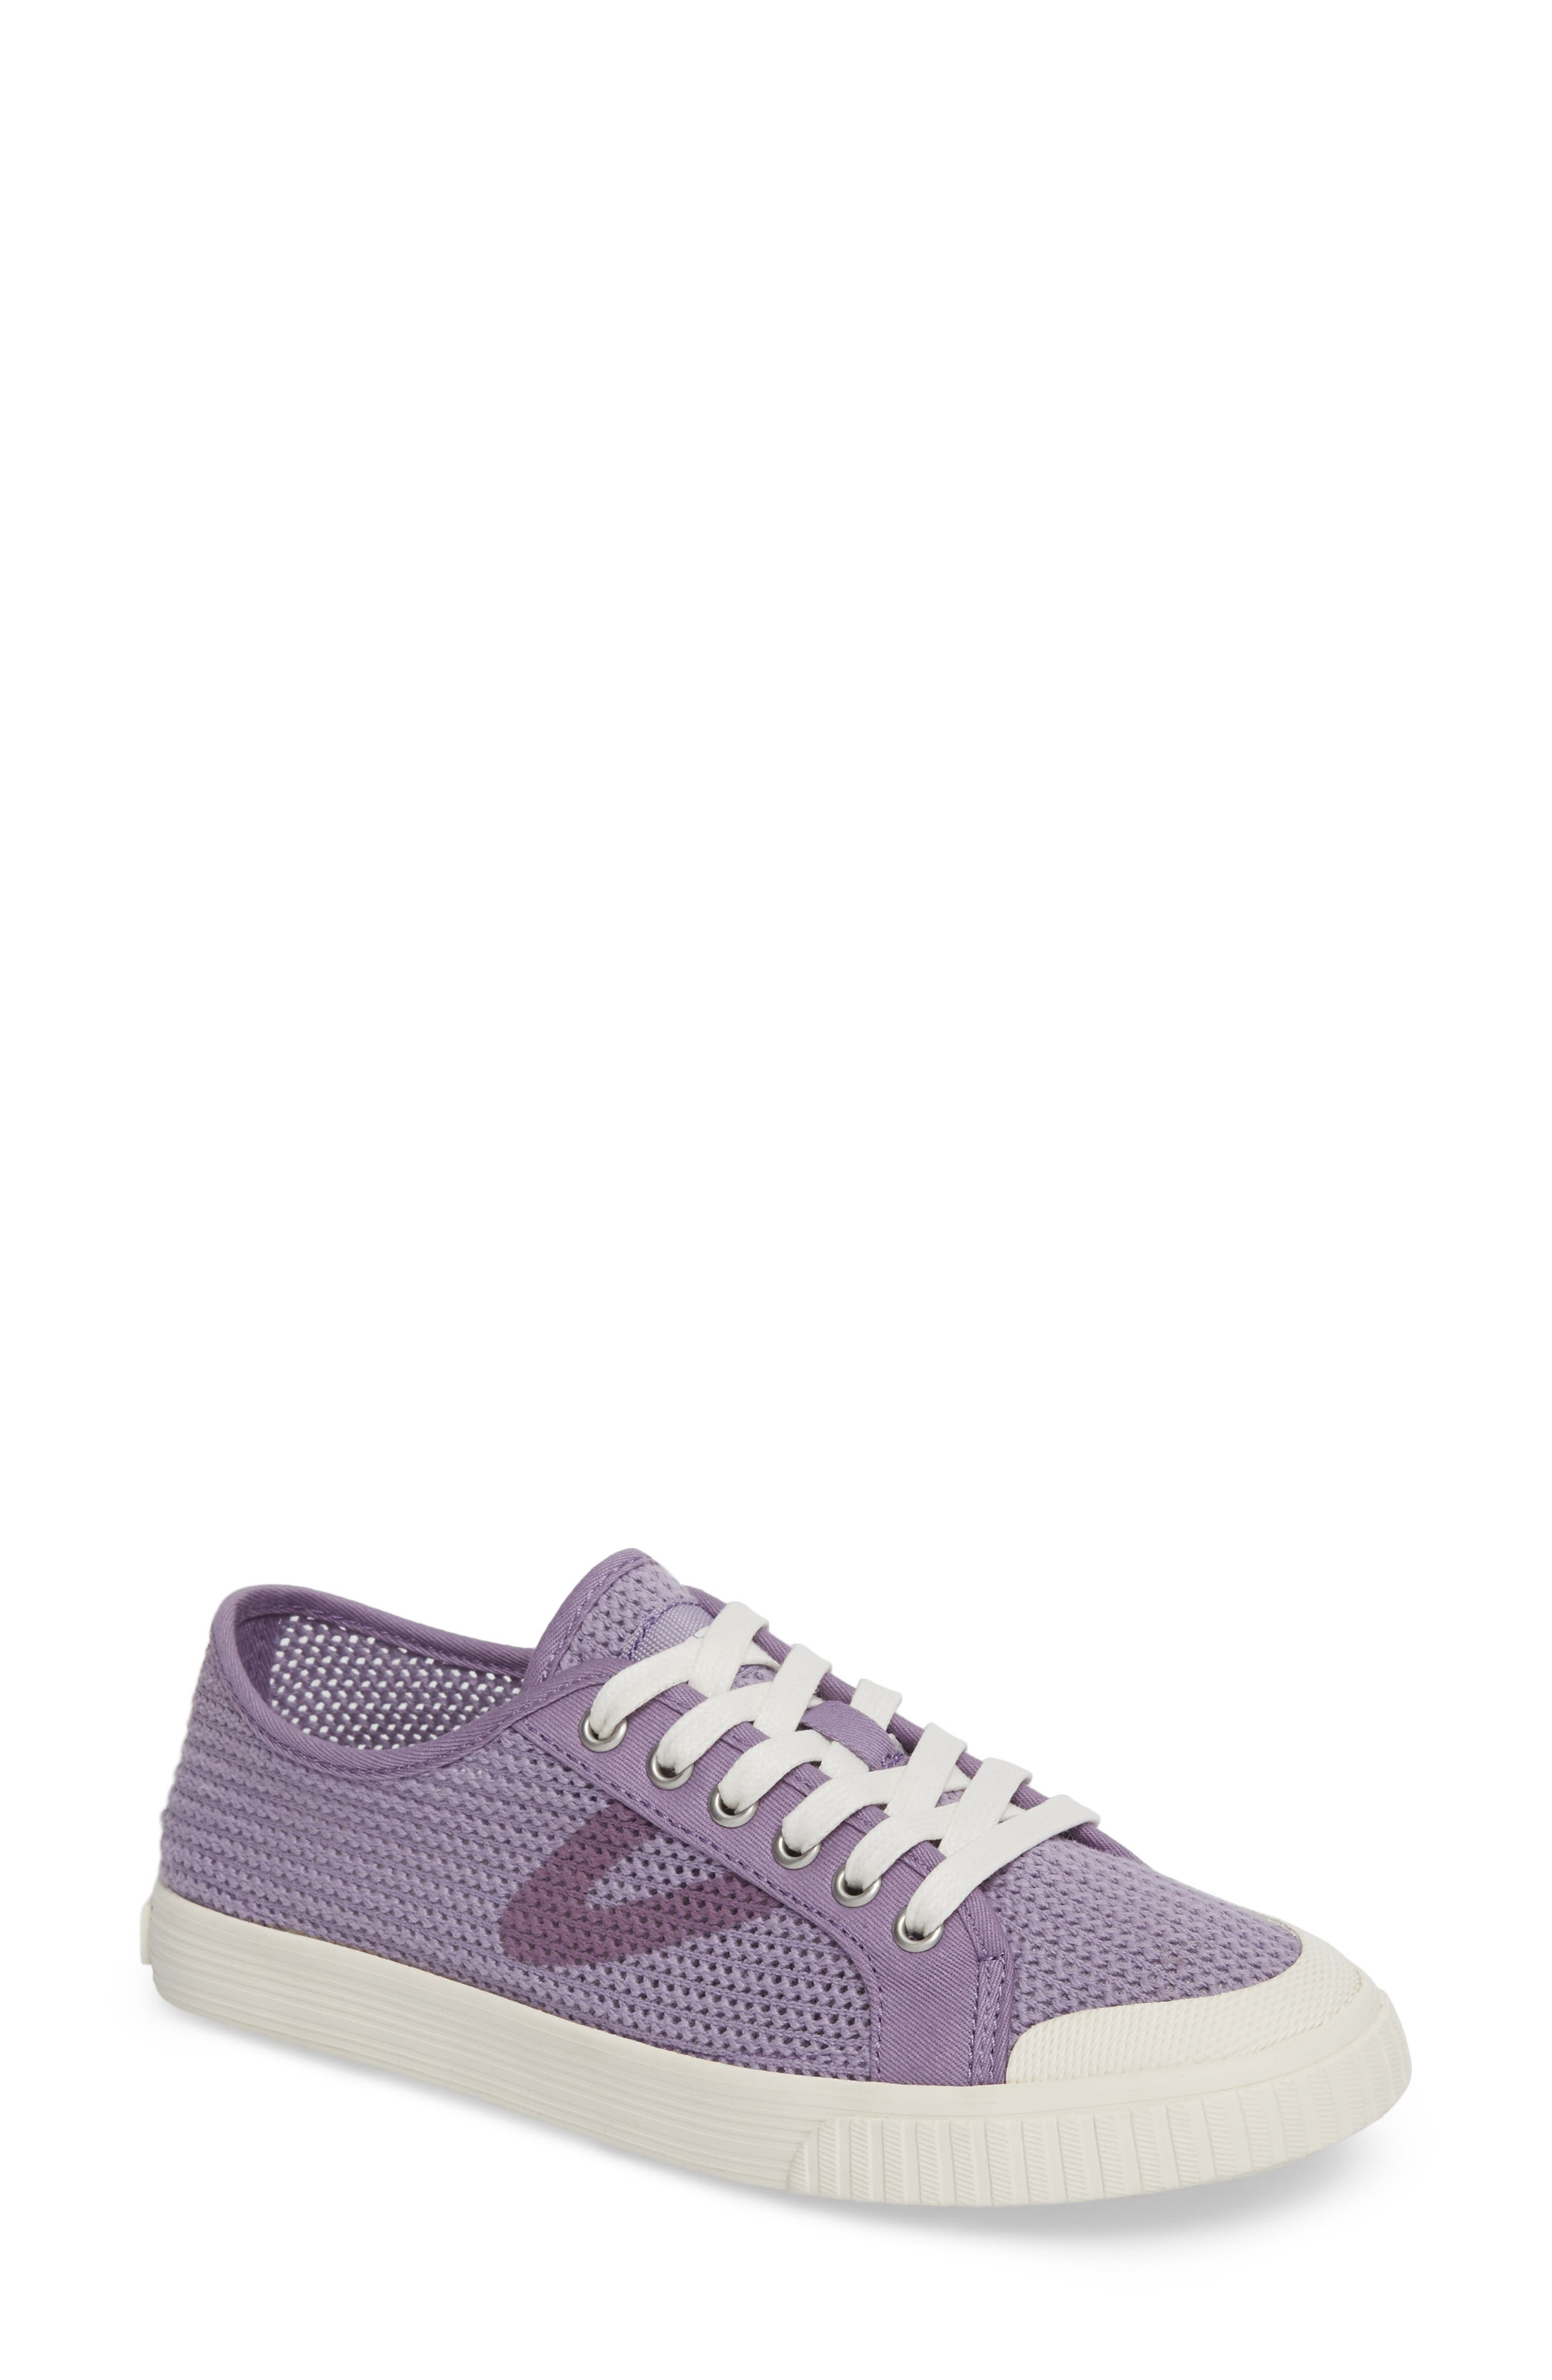 'Tournament Net' Sneaker,                         Main,                         color, Lavender Cotton Mesh